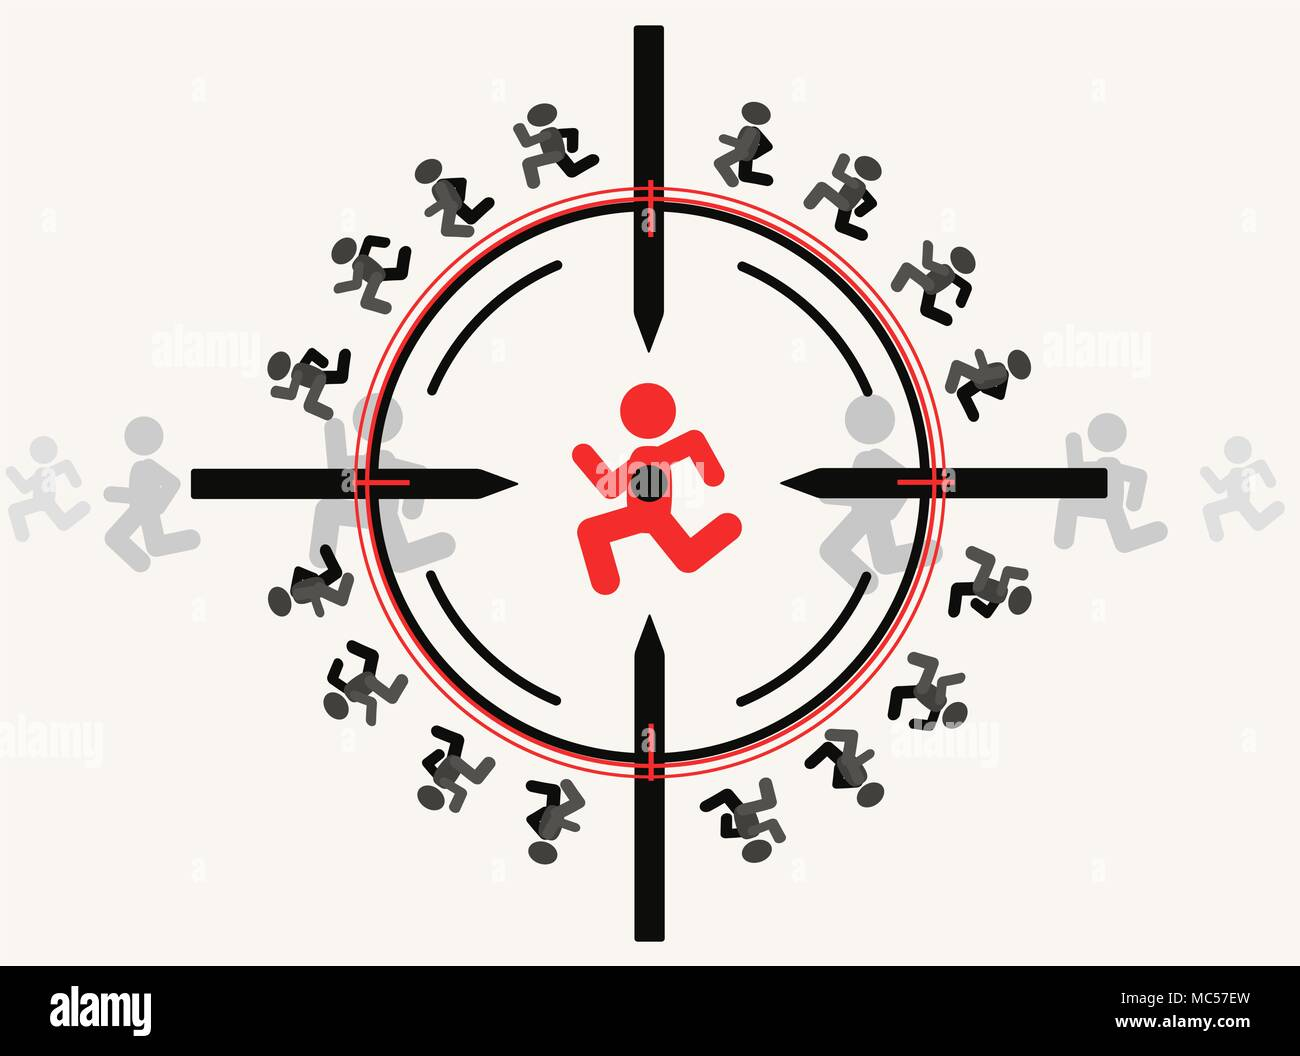 Snipe aim target with people figures, vector illustration color cartoon, horizontal - Stock Image